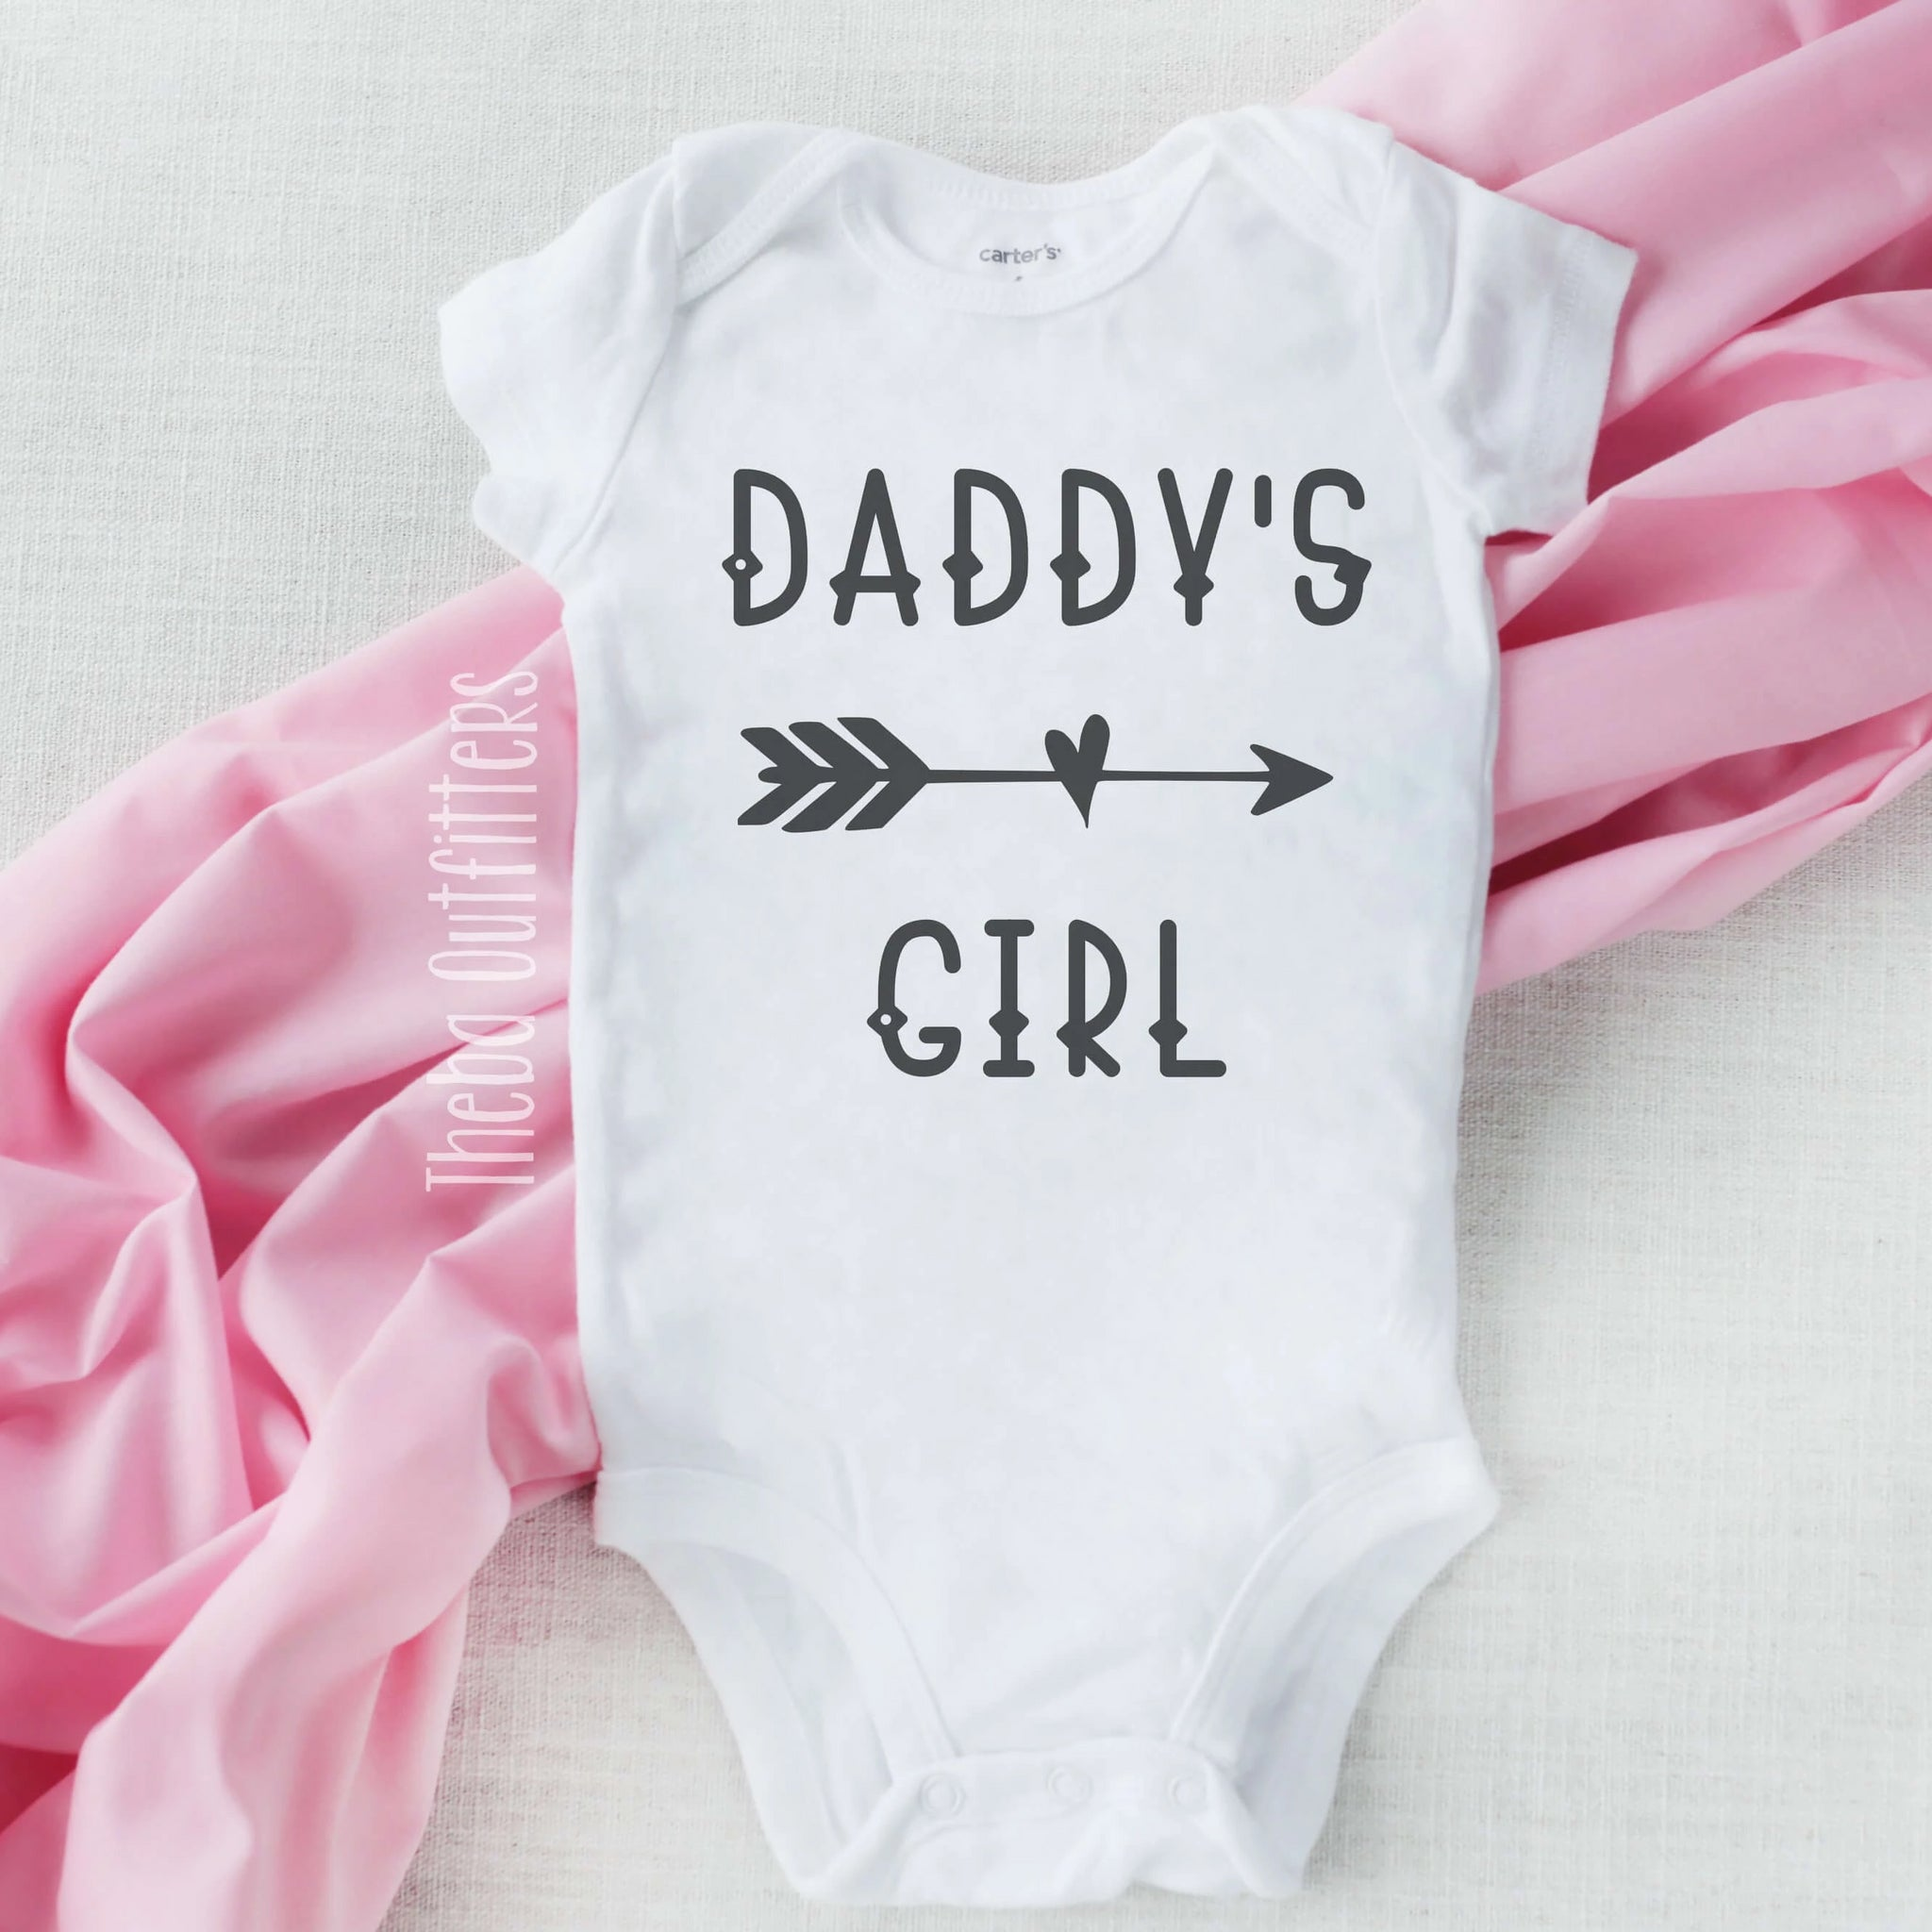 Daddy's Girl Baby Onesie Bodysuit Father's Day Gift Infant Newborn Theba Outfitters